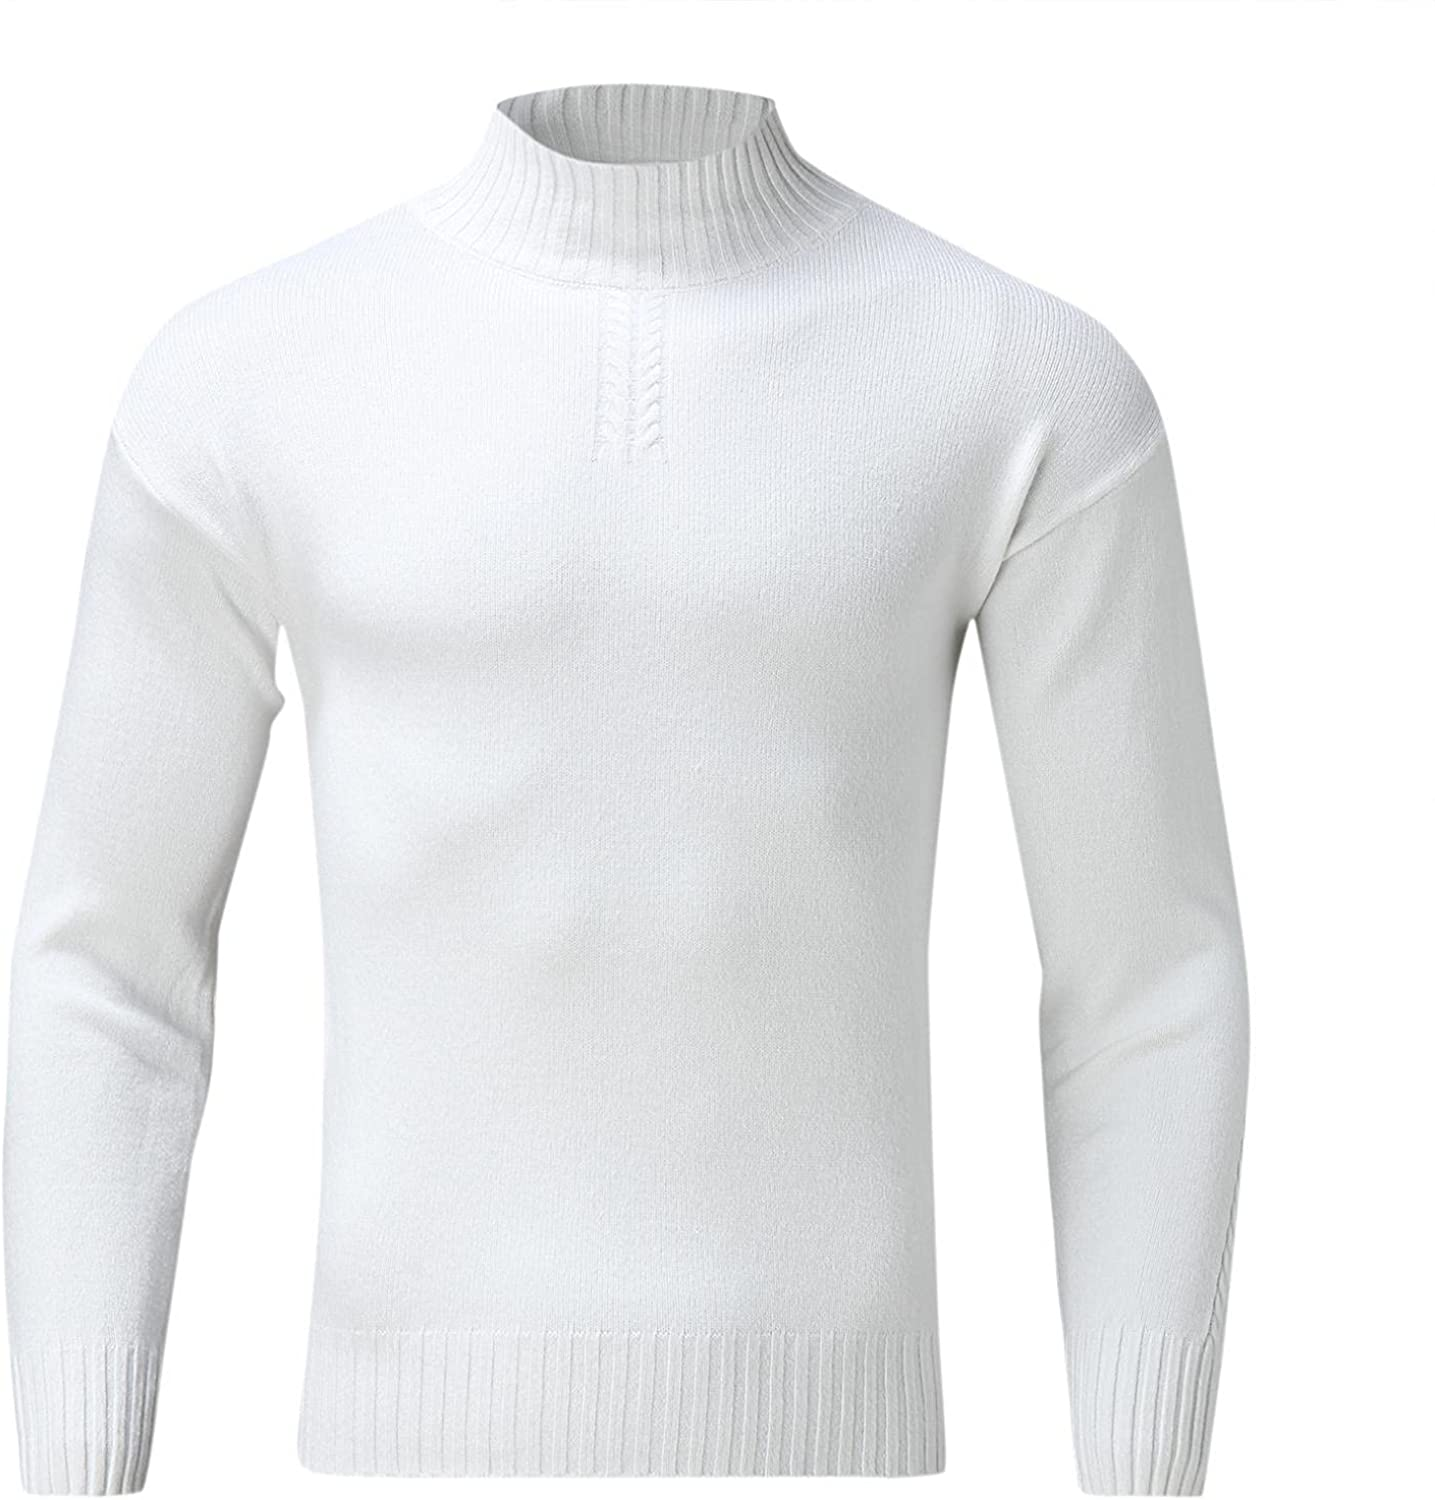 Burband Mens Casual Turtleneck Pullover Sweaters Slim Fit Basic Knitted Thermal Tops Long Sleeve Lightweight Base Layers